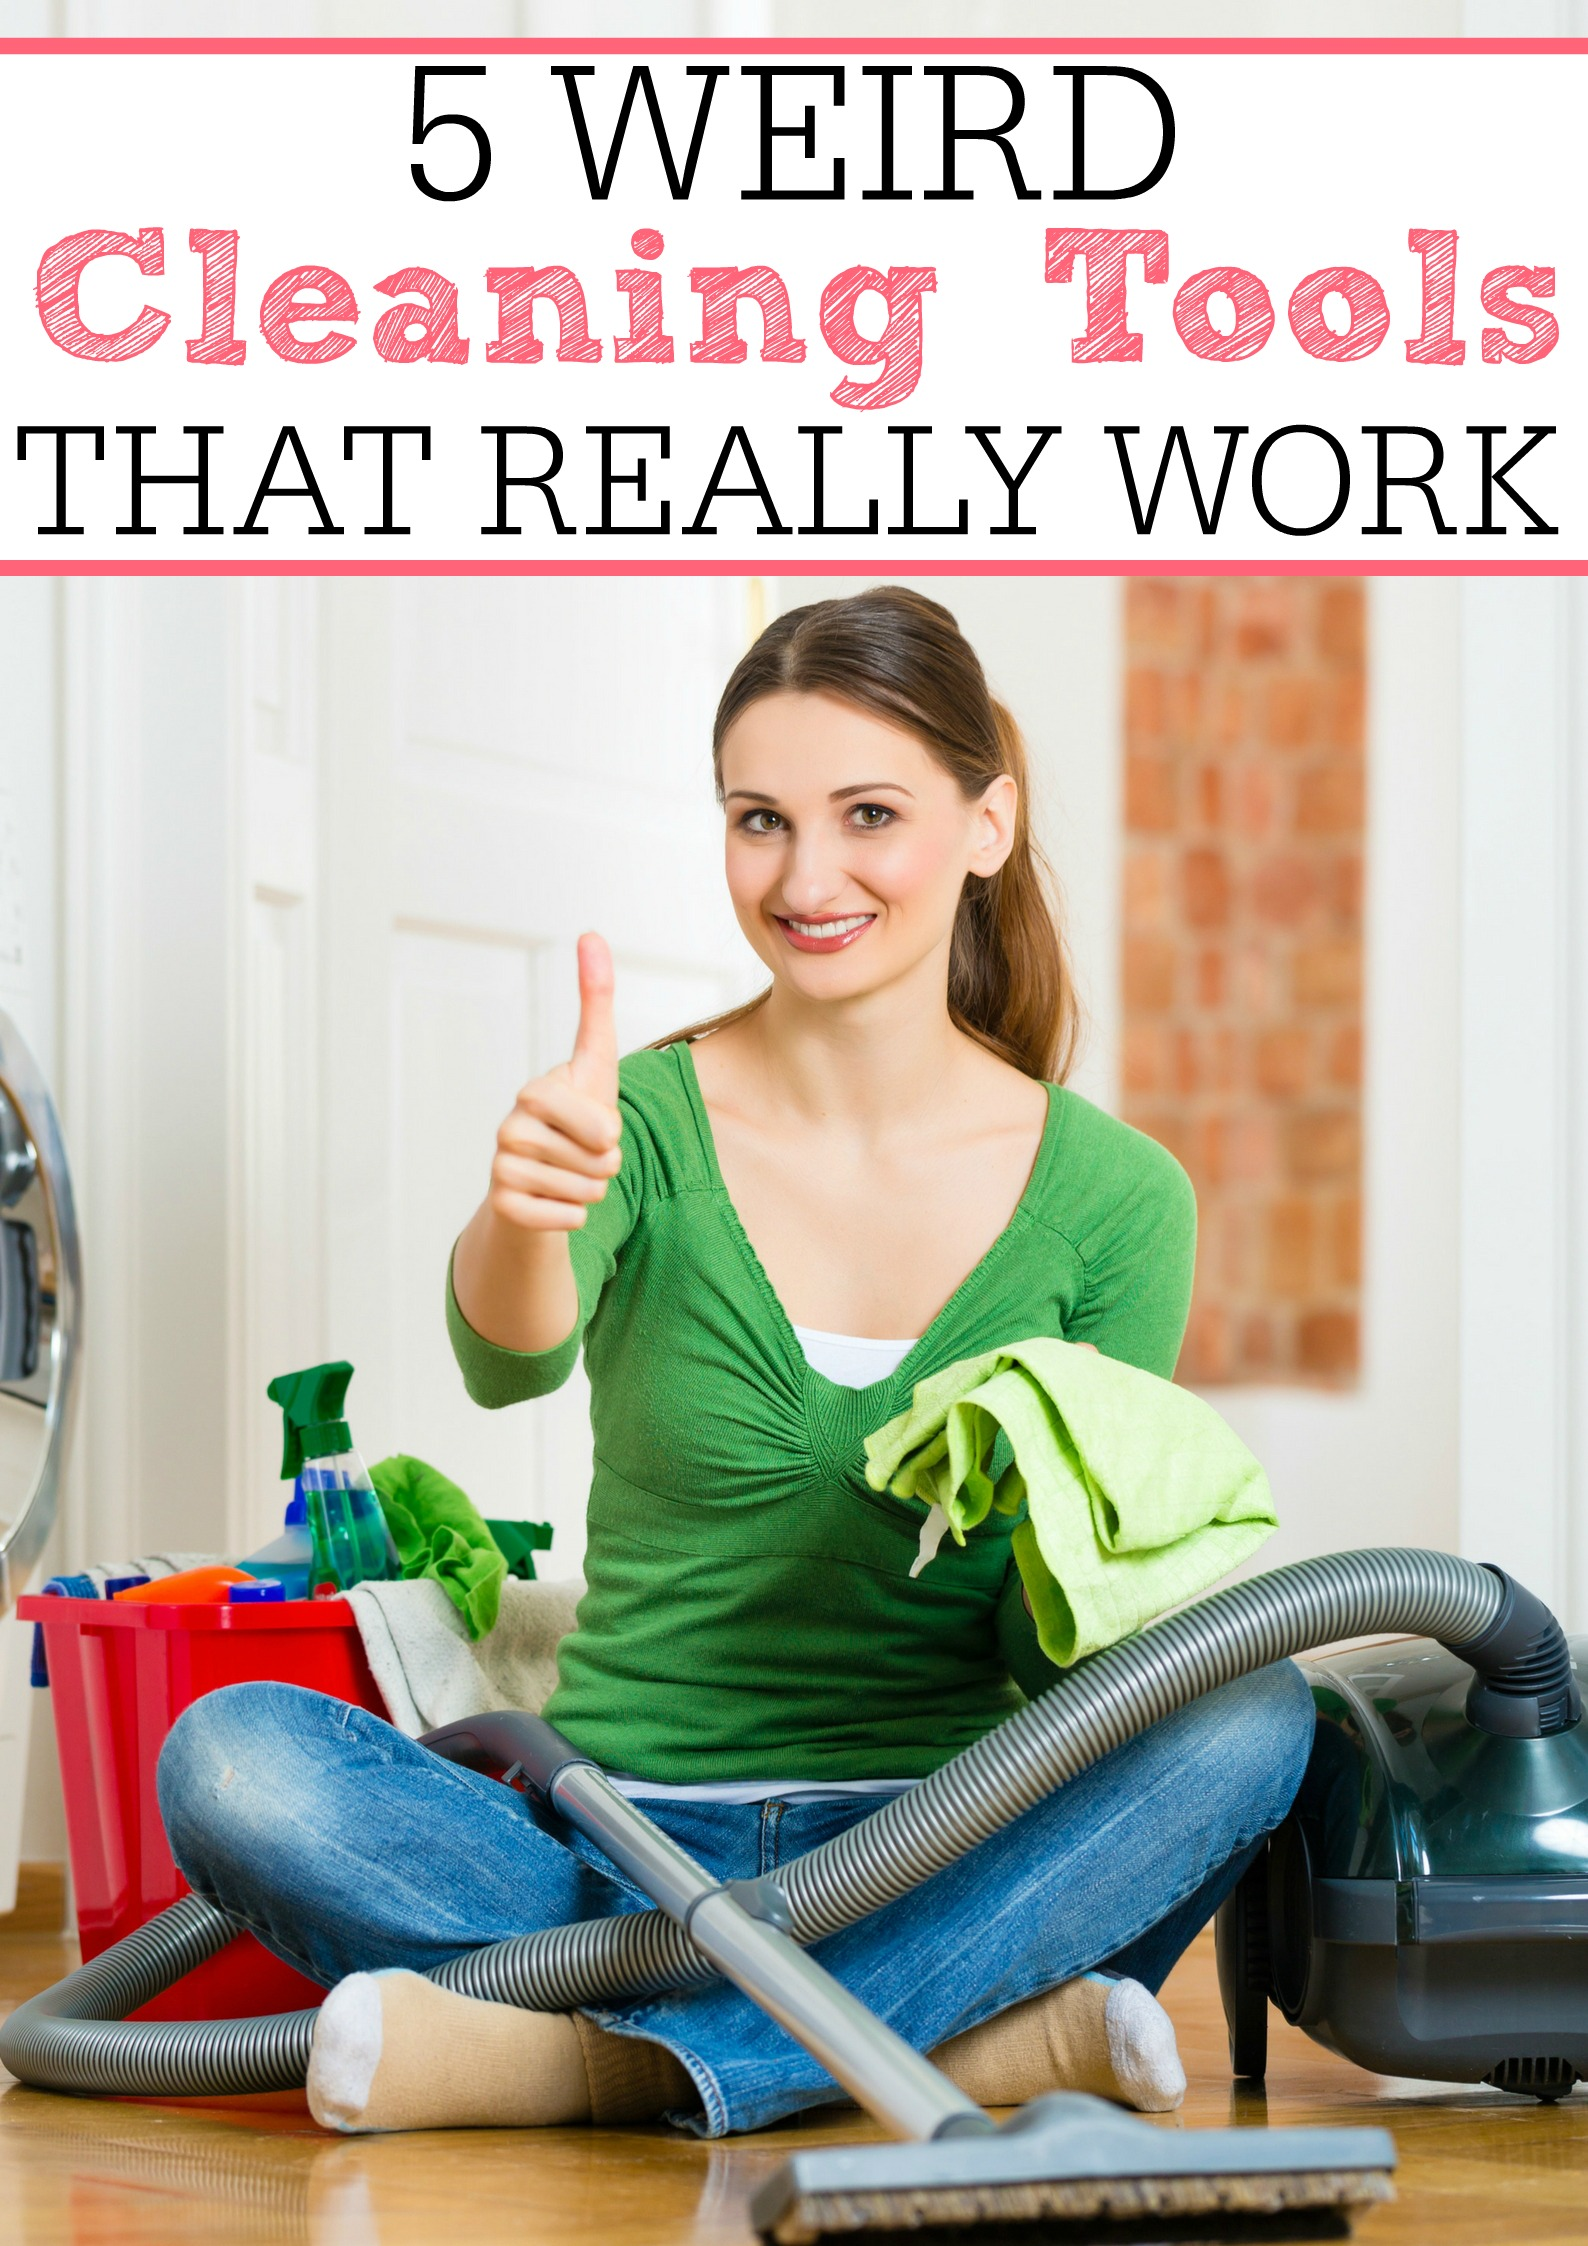 Weird Cleaning Tools That Really Work